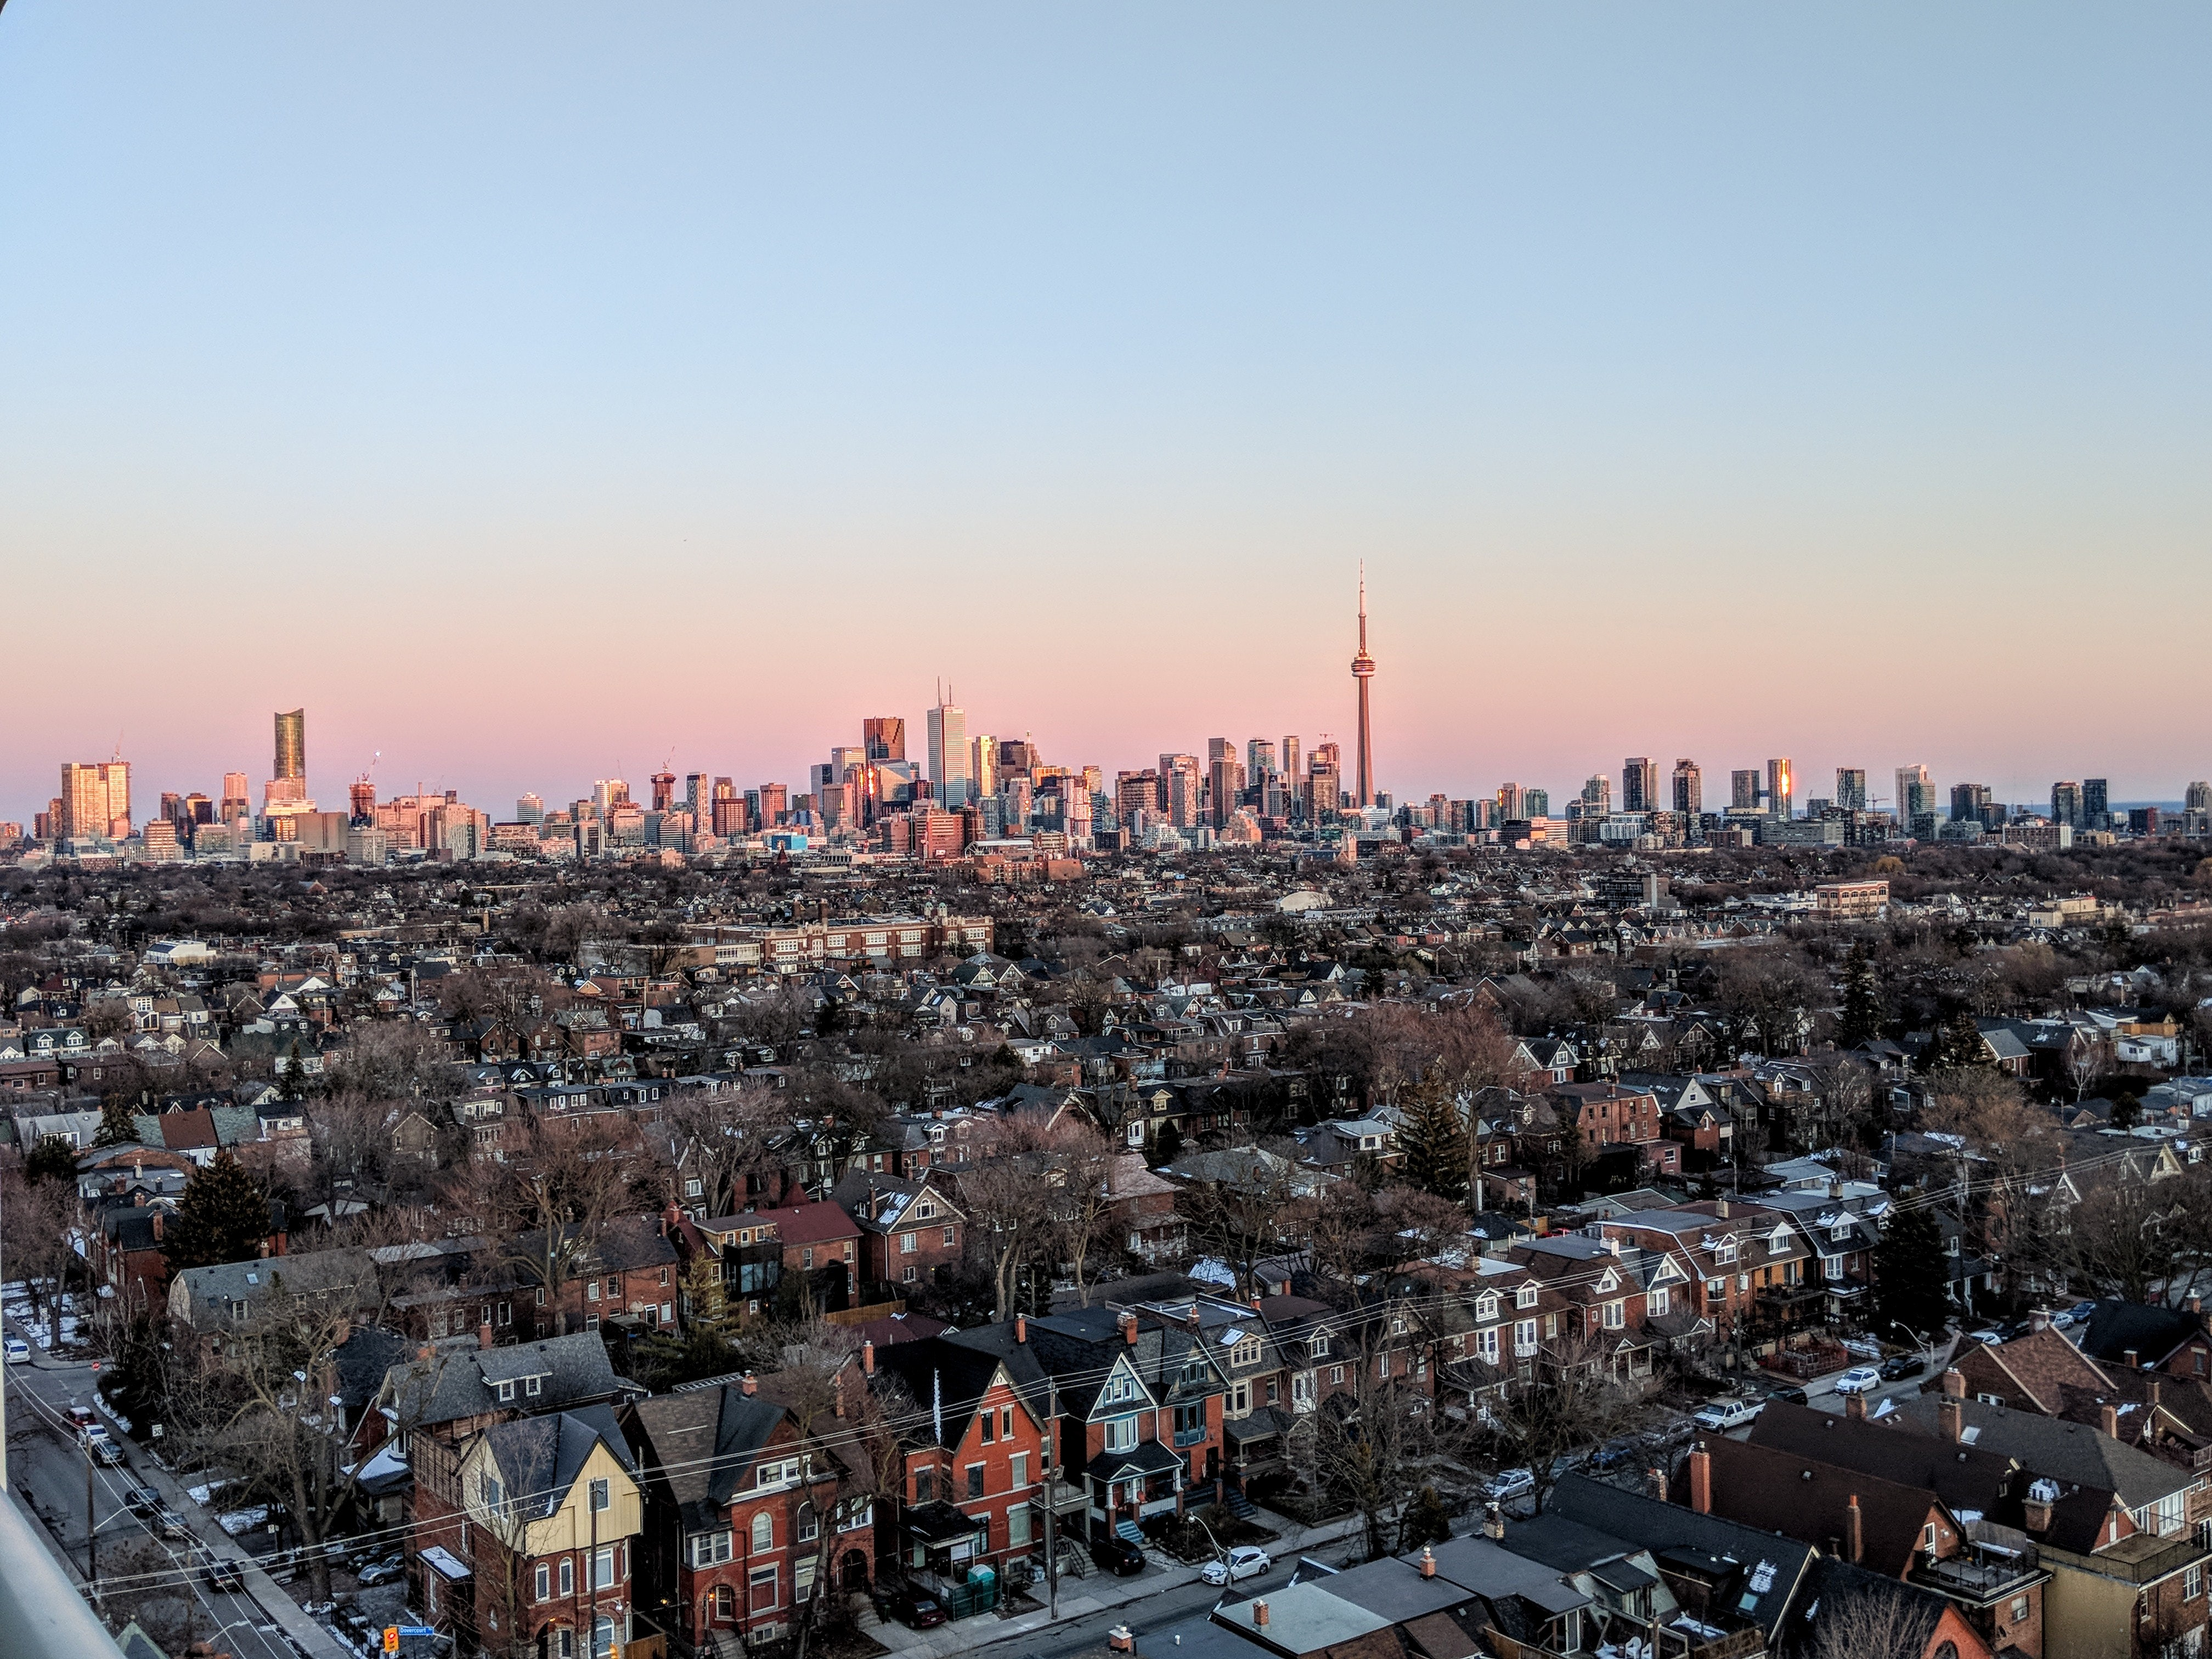 Aerial Photography of City, Architecture, Setting sun, Urban, Trees, HQ Photo